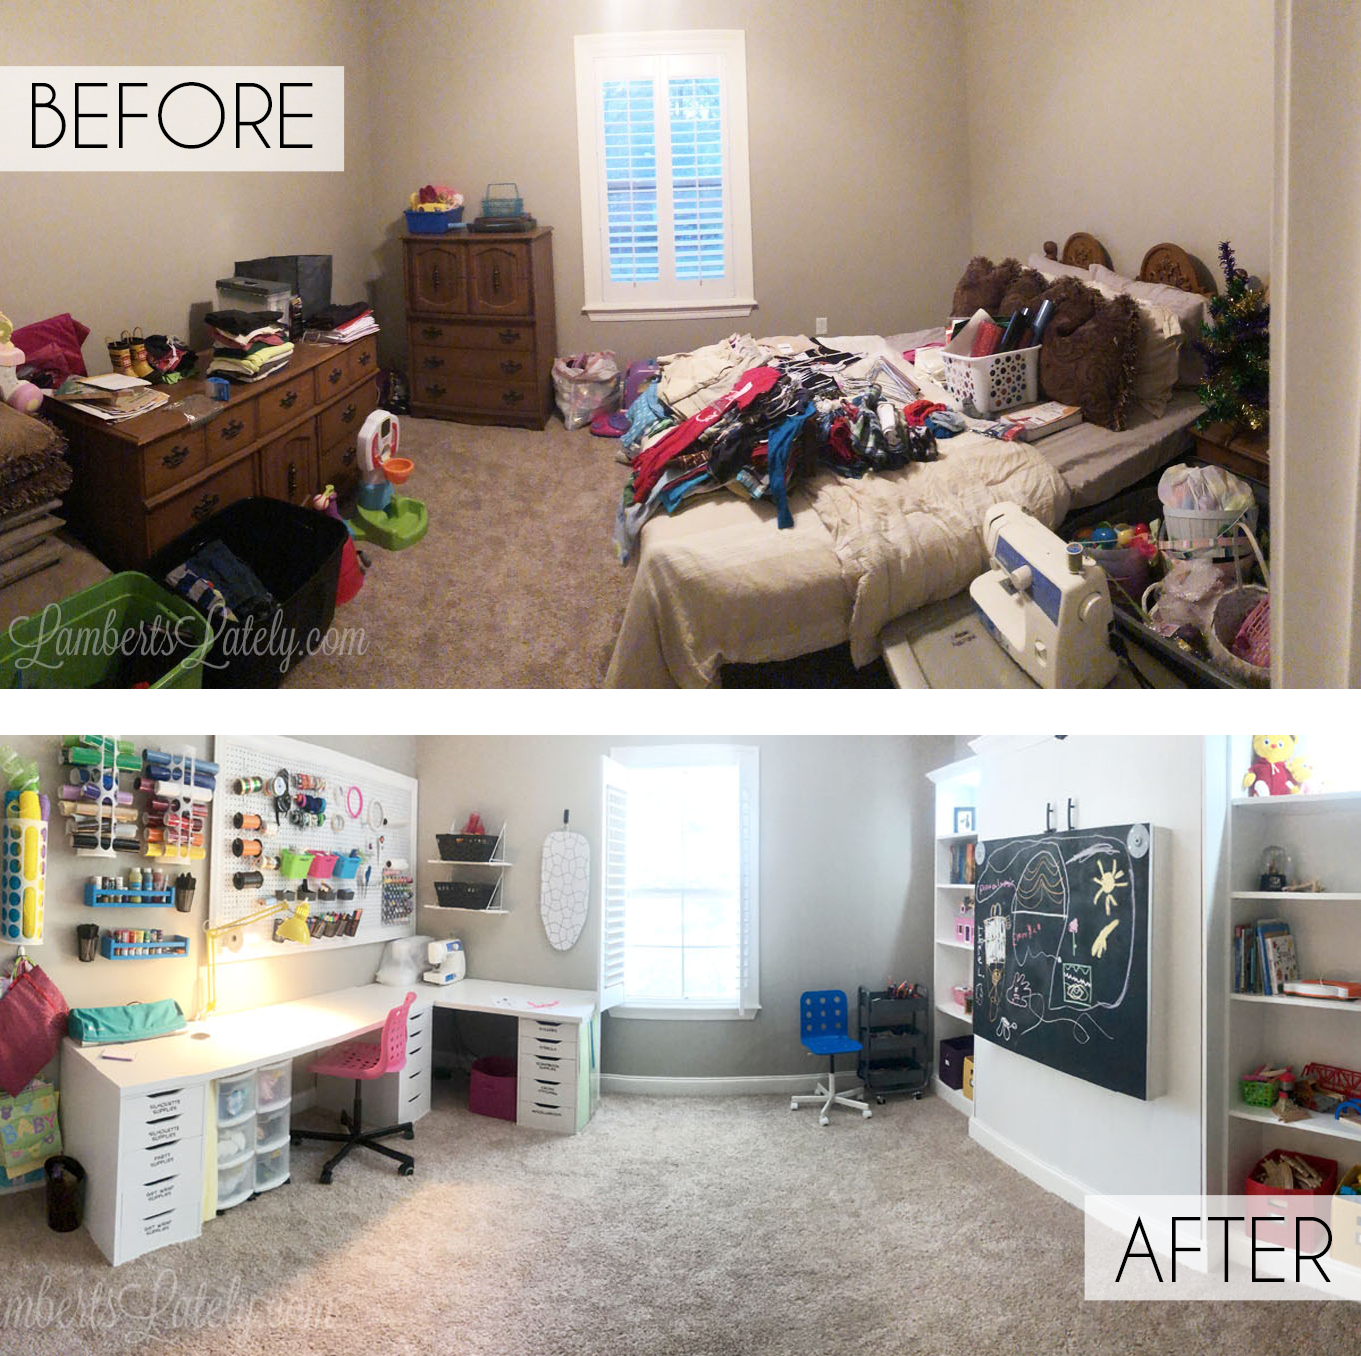 Take a tour of a craft room / guest room combo, complete with great organization ideas, simple storage solutions, and ways to design a space that is both beautiful and functional (whether big or small).